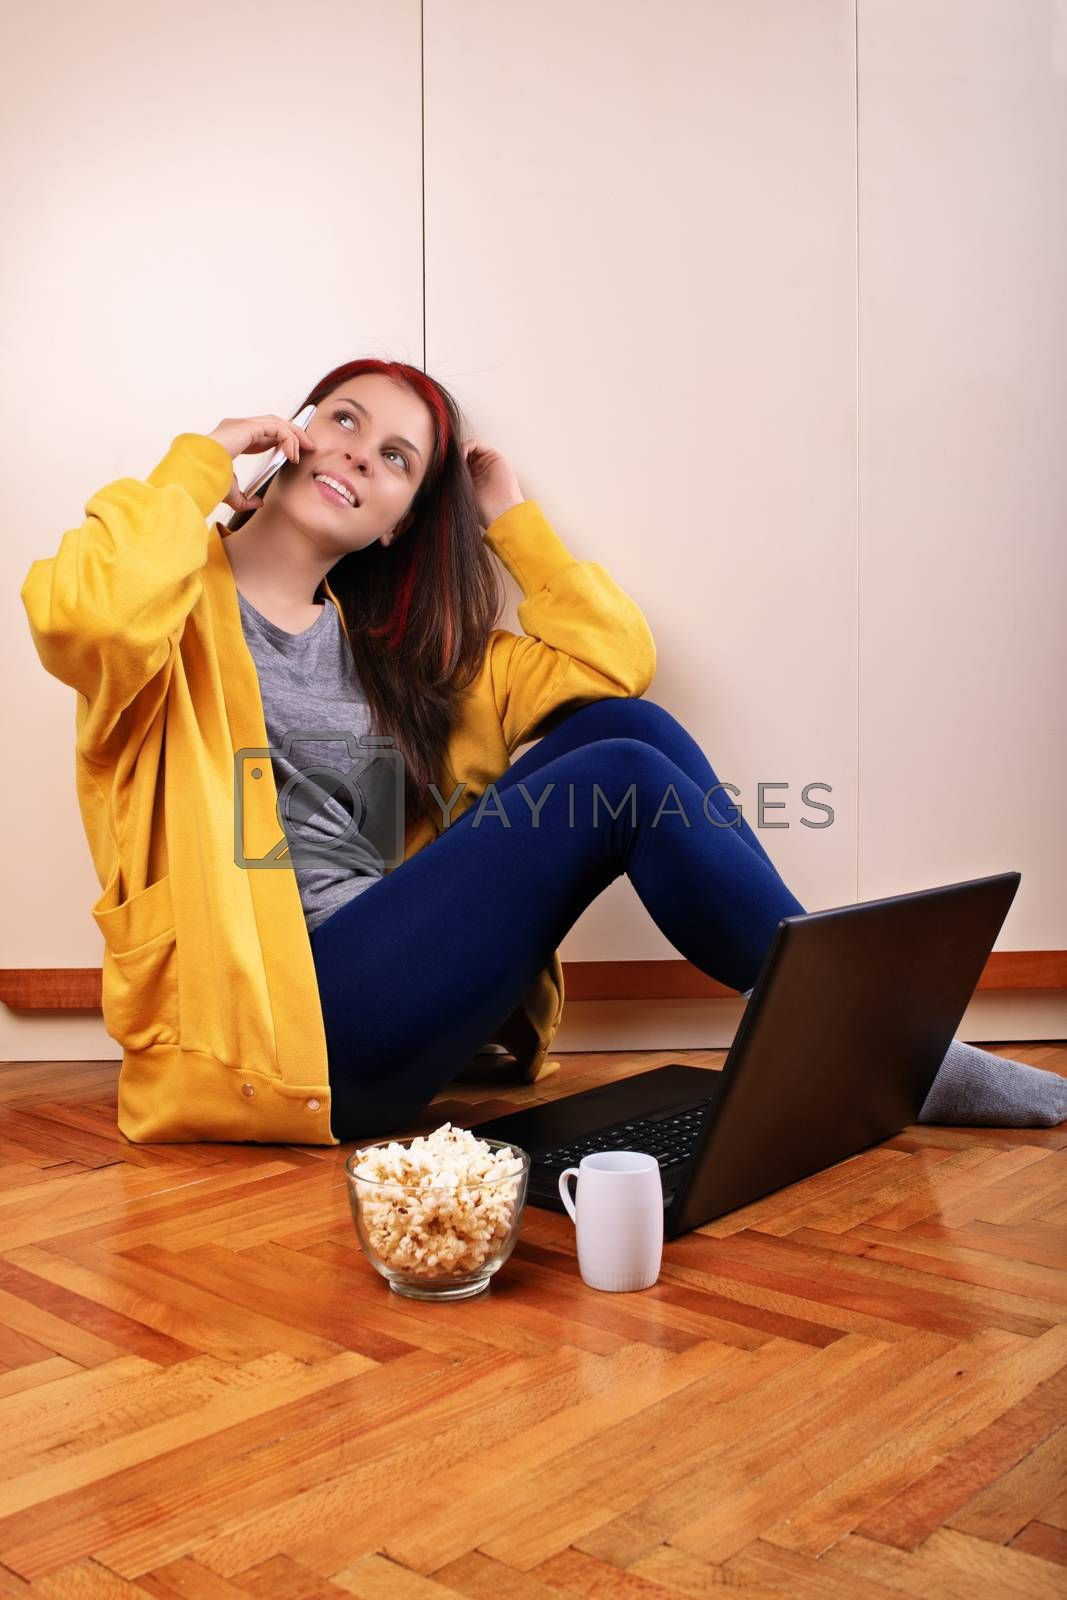 Young girl on her phone preparing to watch a movie by Mendelex